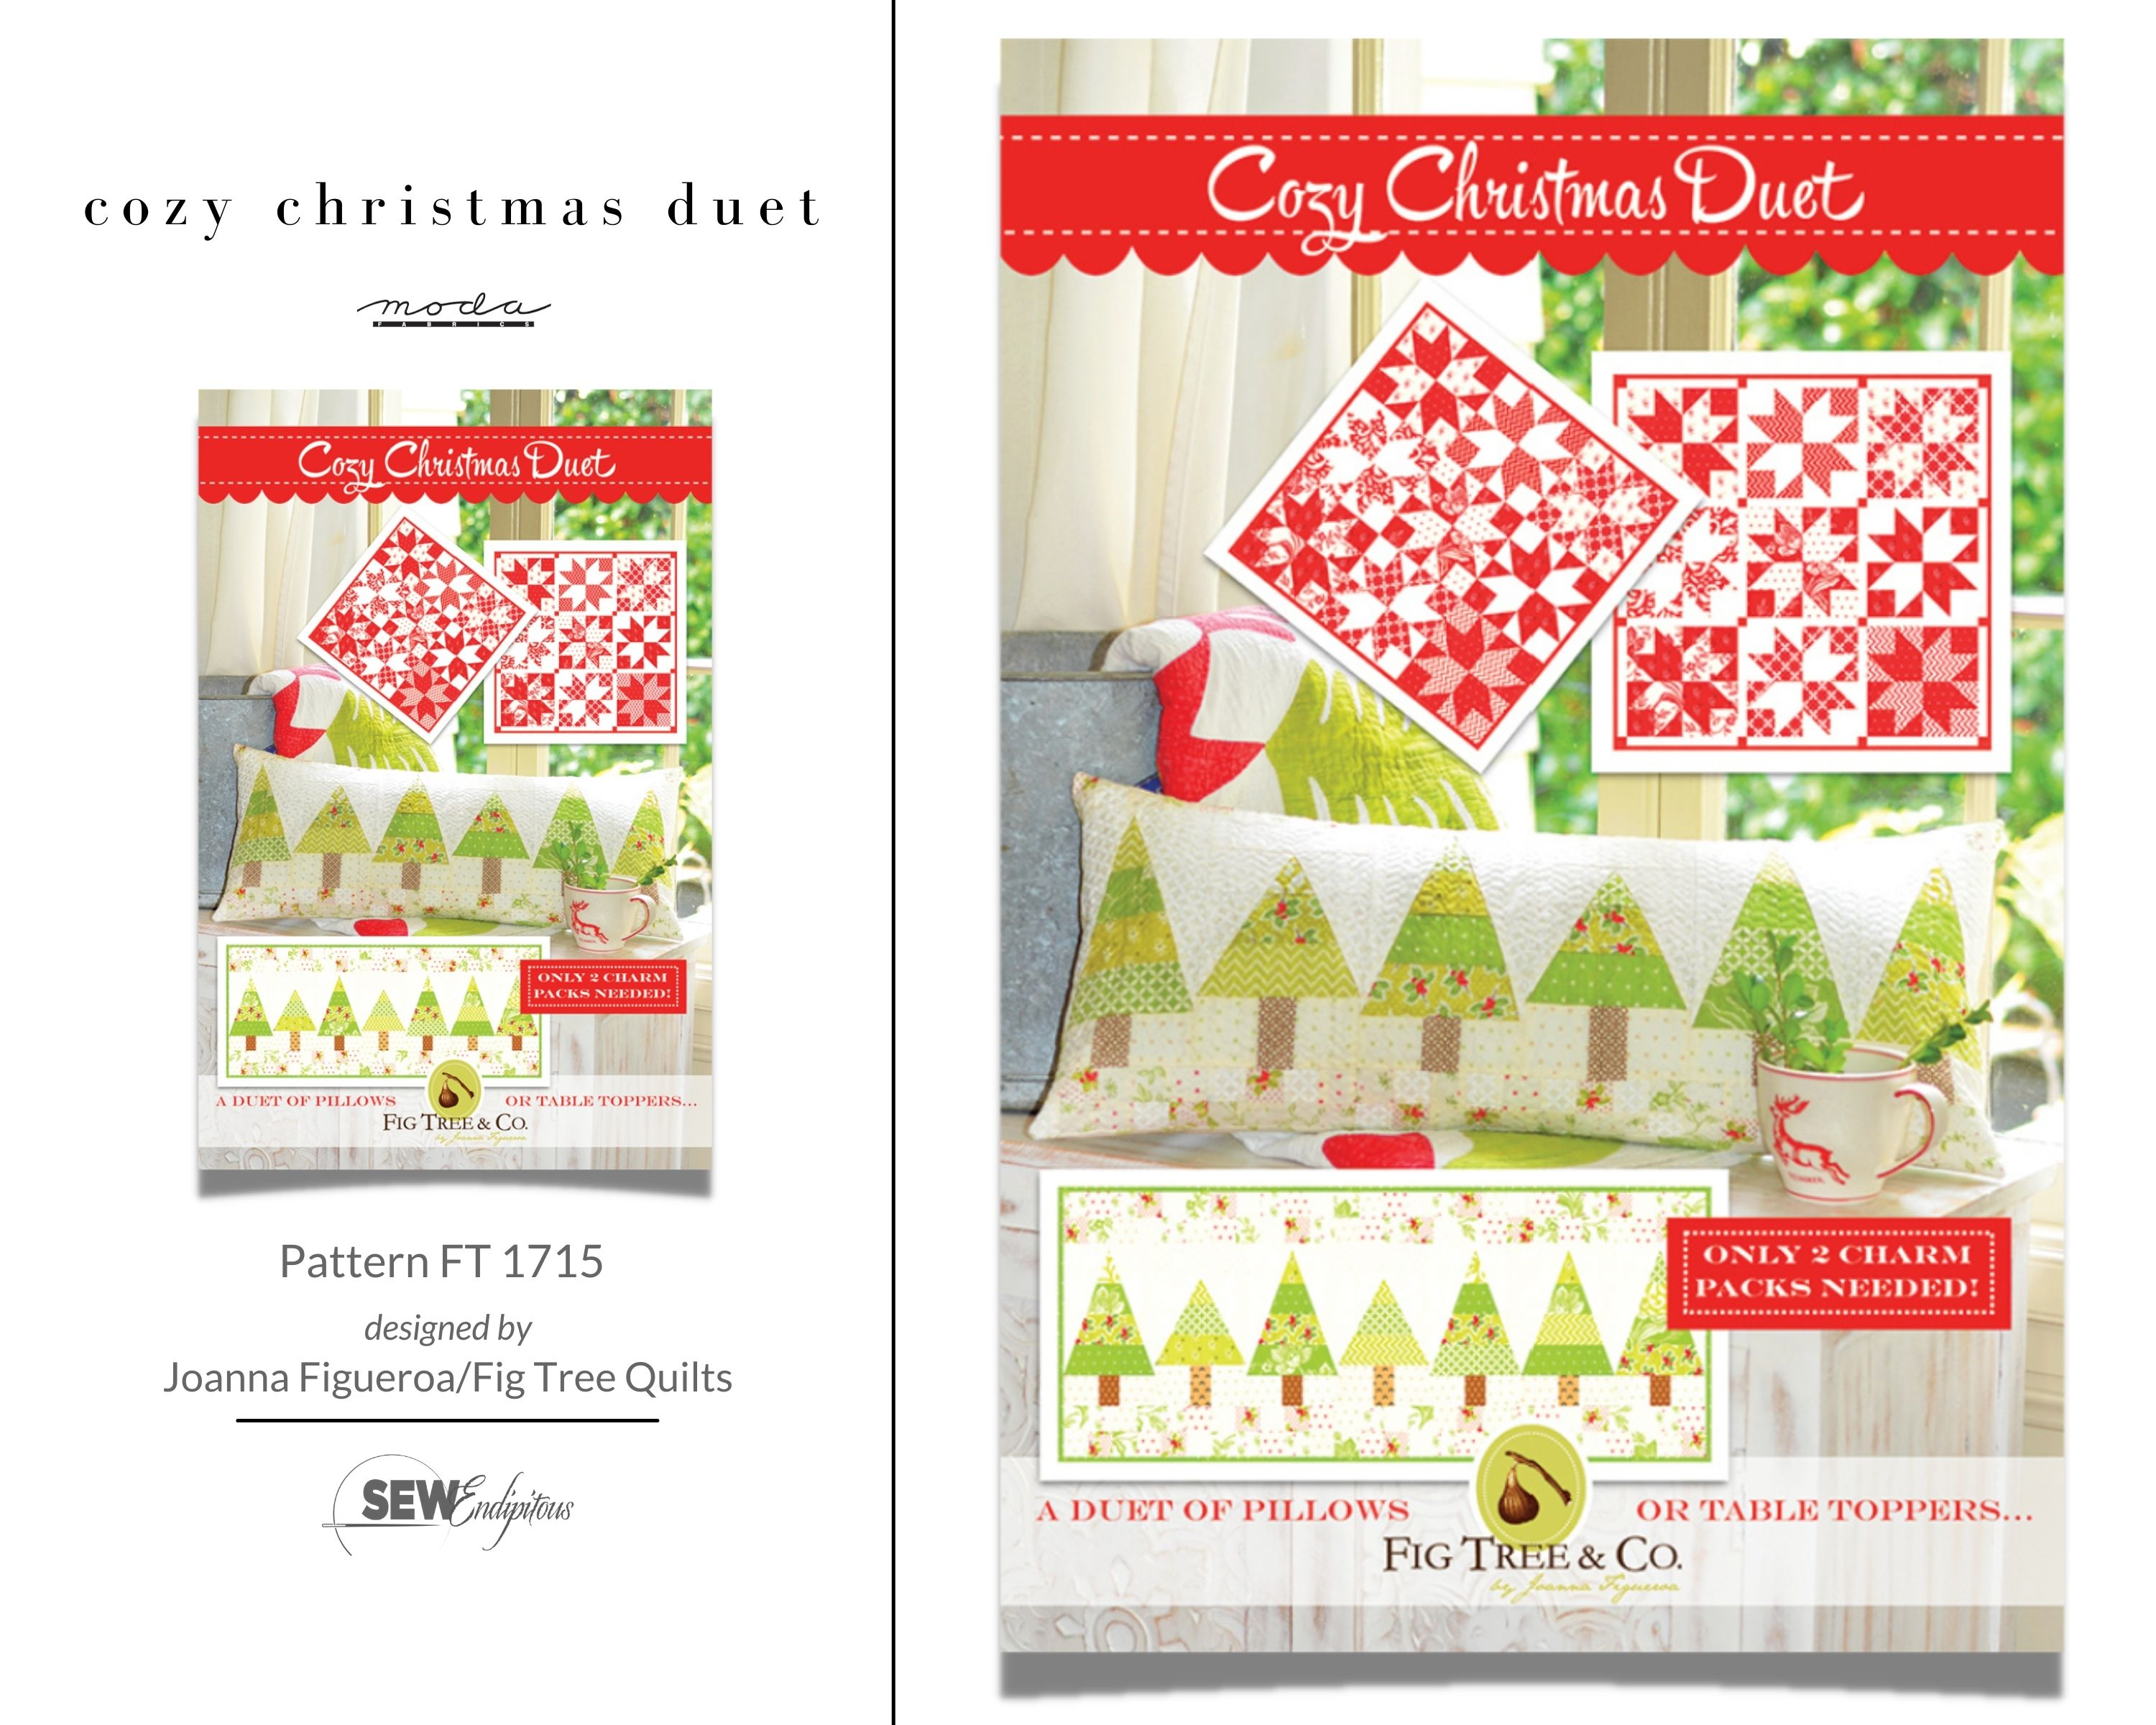 Cozy Christmas Duet - Pattern FT 1715